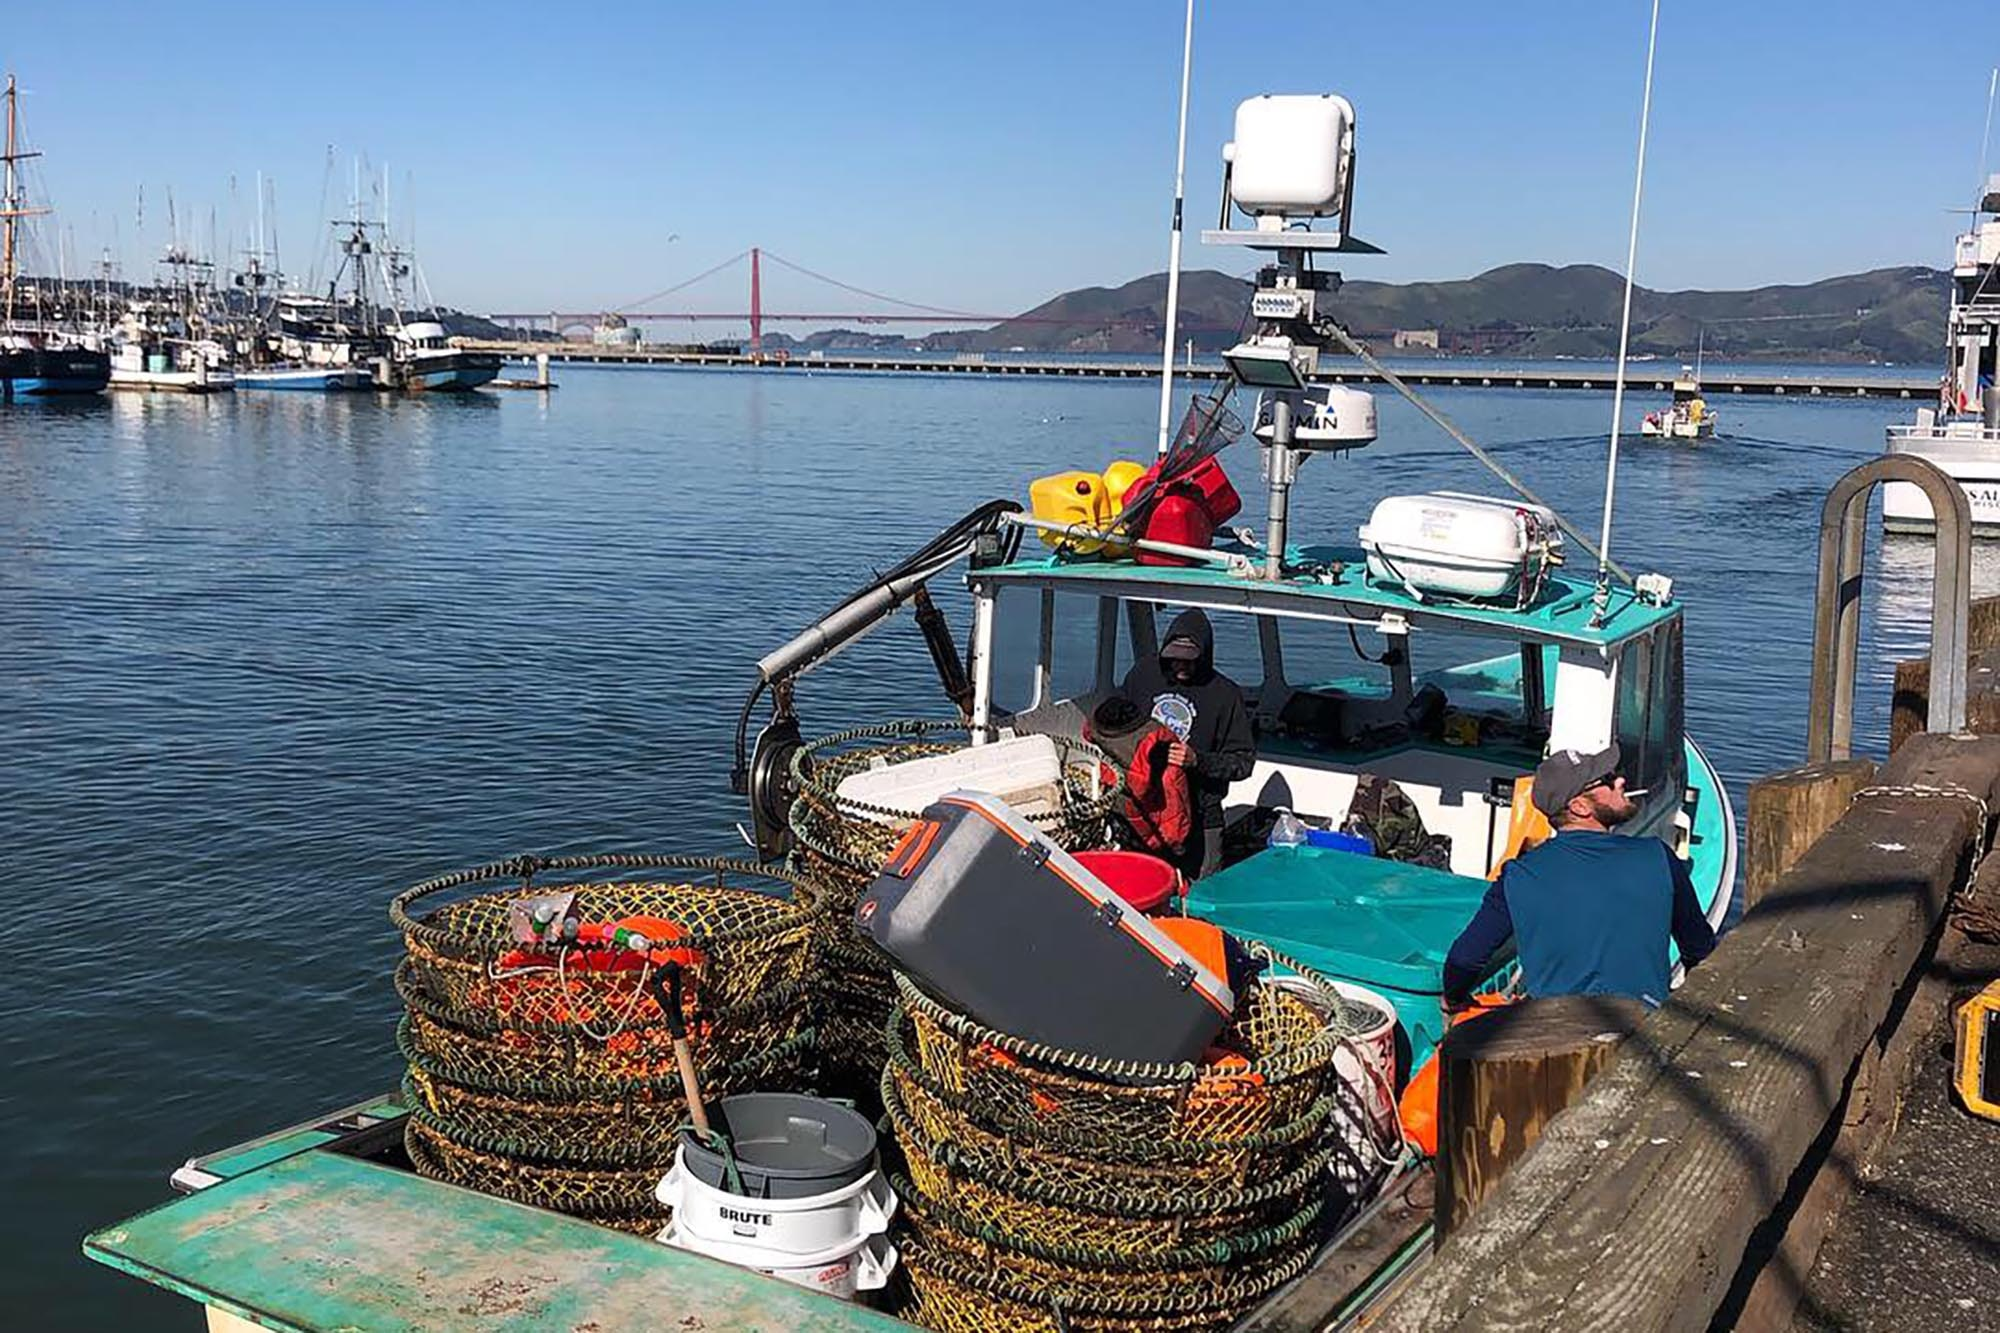 By connecting small-scale fishermen with restaurants, organizations like Water2Table help create a demand for sustainable seafood.